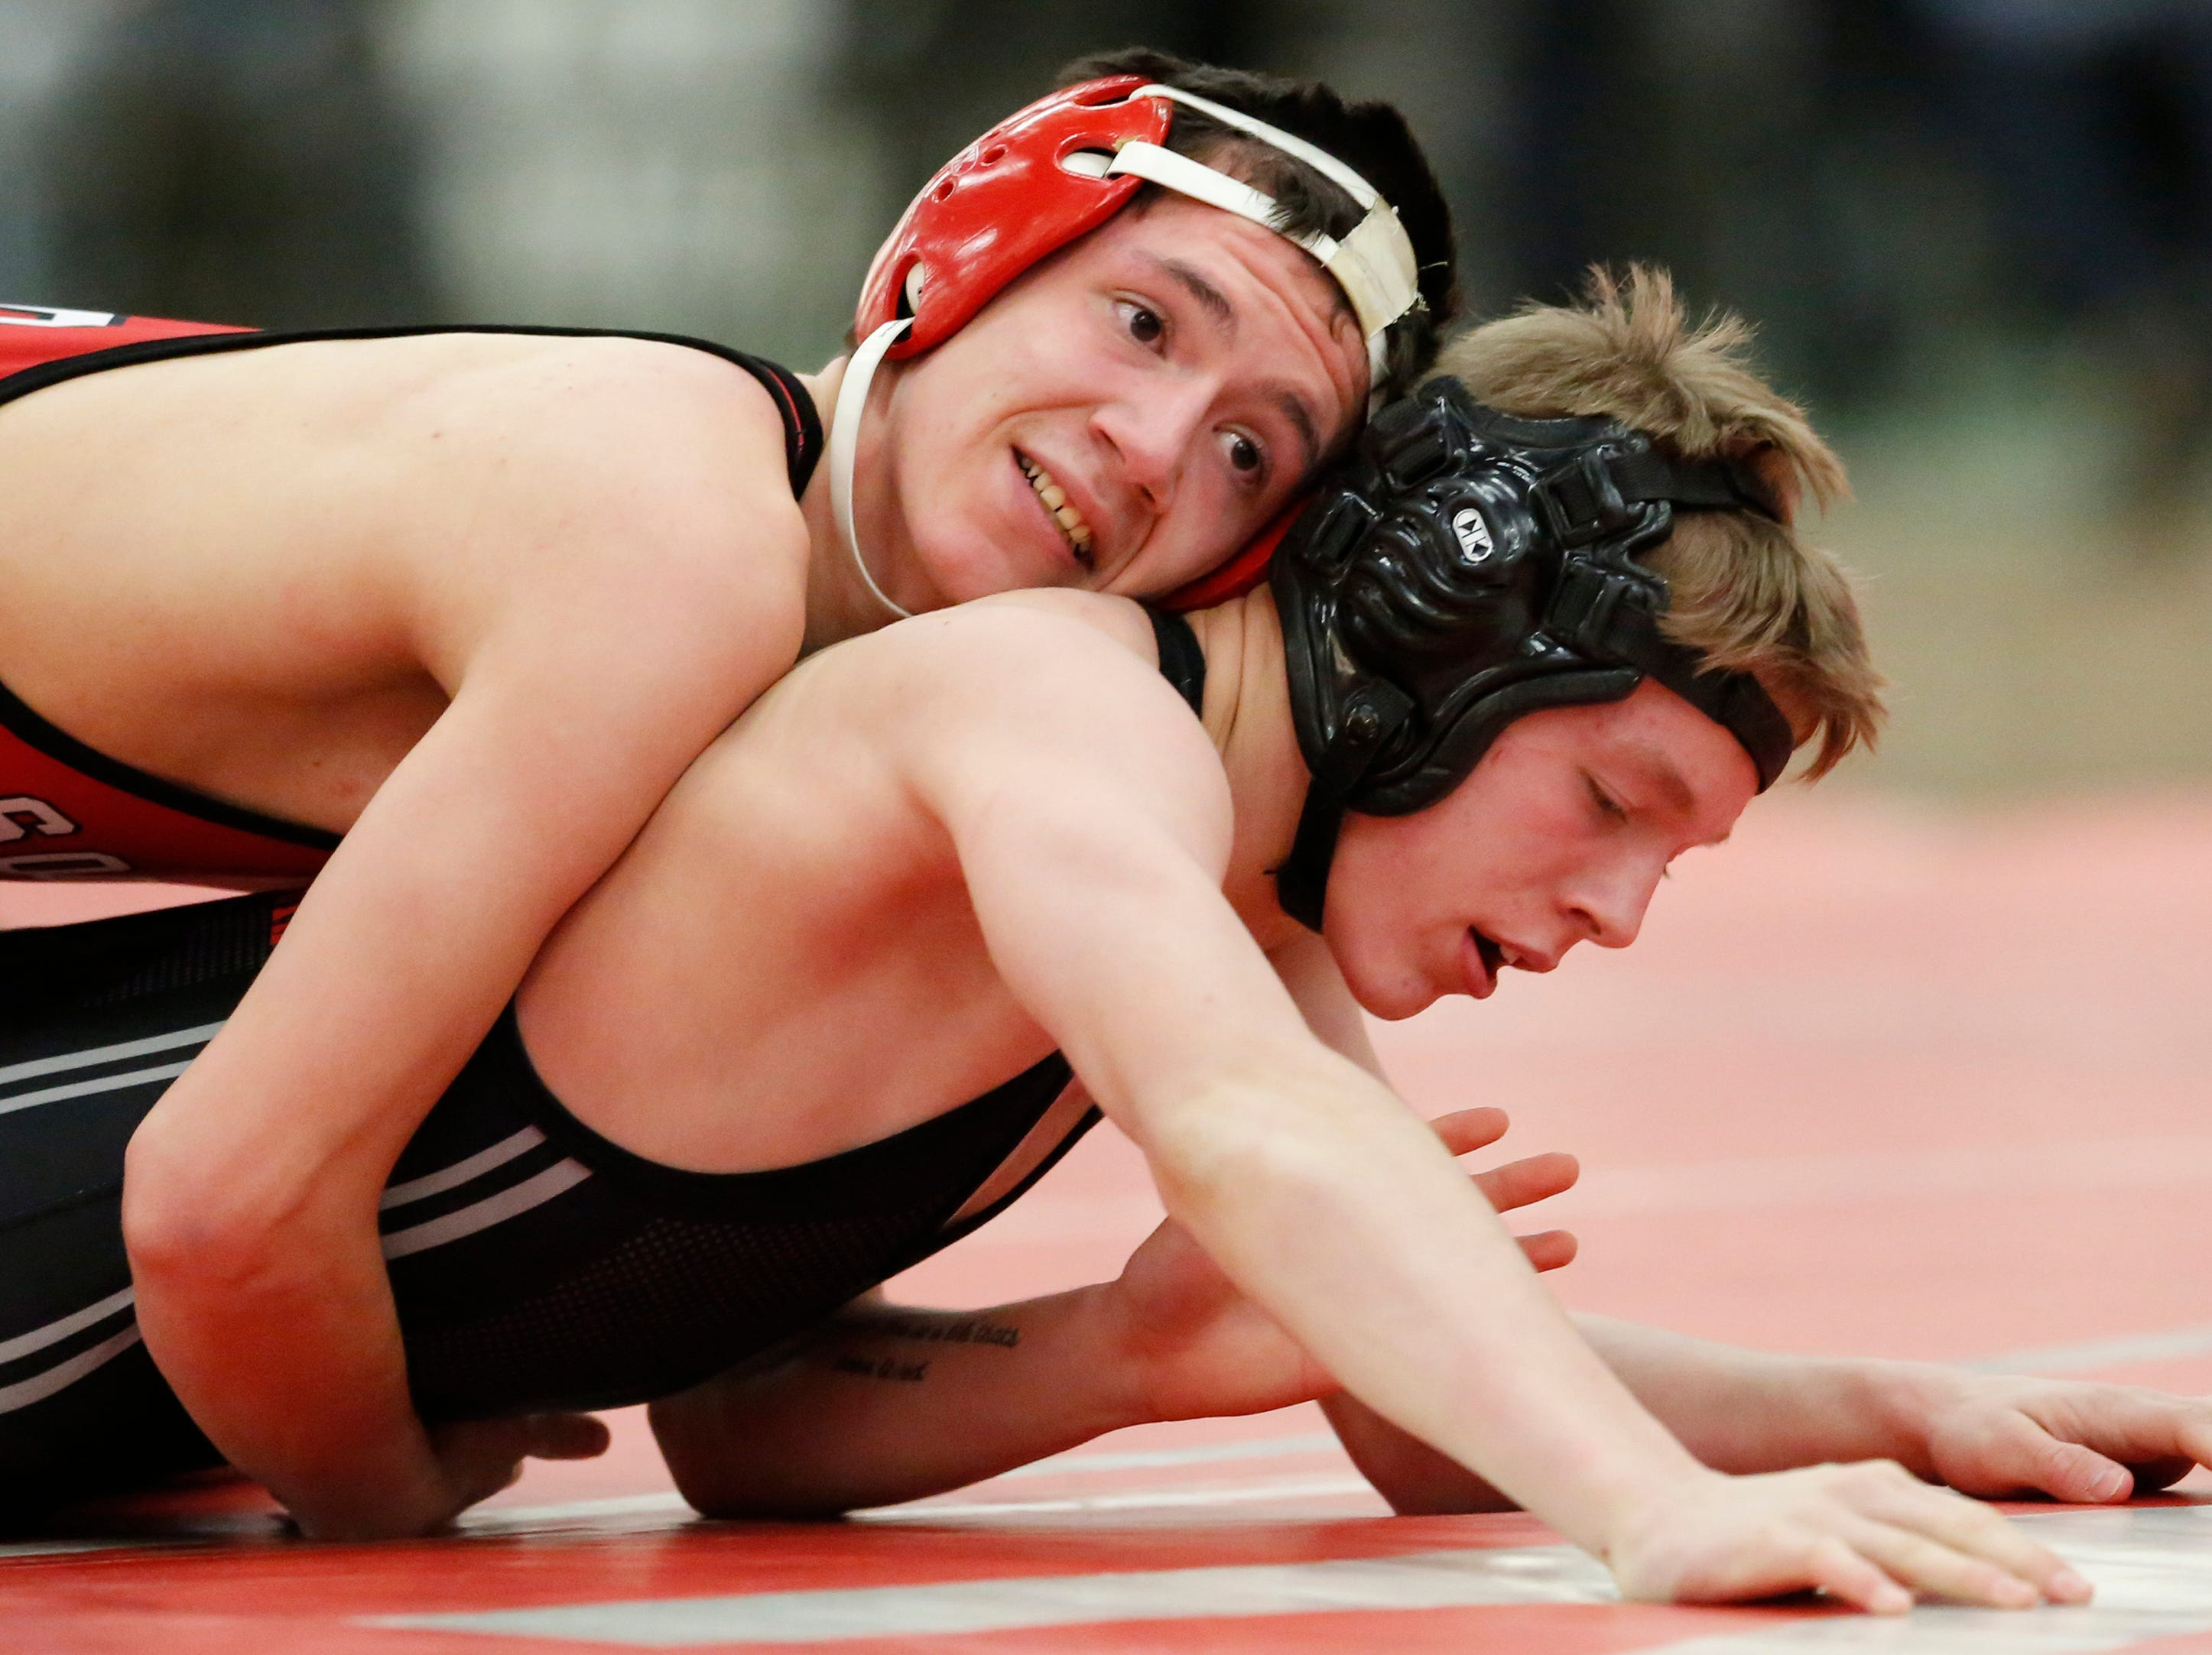 Sheboygan South's Alonzo Backhaus wrestles Plymouth's Kade Novak in the 120 weight class during the WIAA D1 Regionals at Manitowoc Lincoln High School Saturday, February 9, 2019, in Manitowoc, Wis. Joshua Clark/USA TODAY NETWORK-Wisconsin